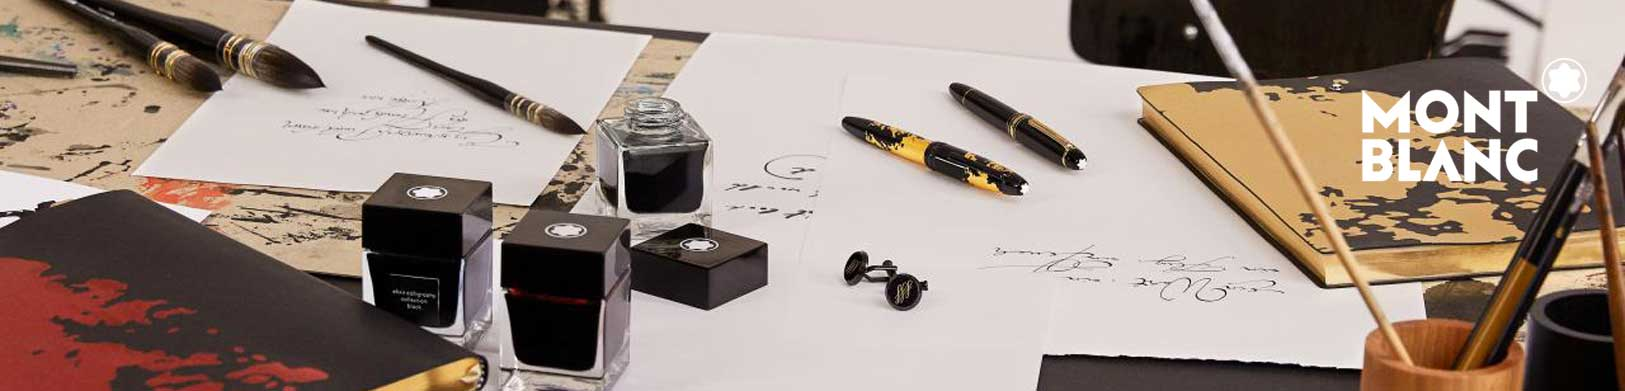 Montblanc Pens & Gifts